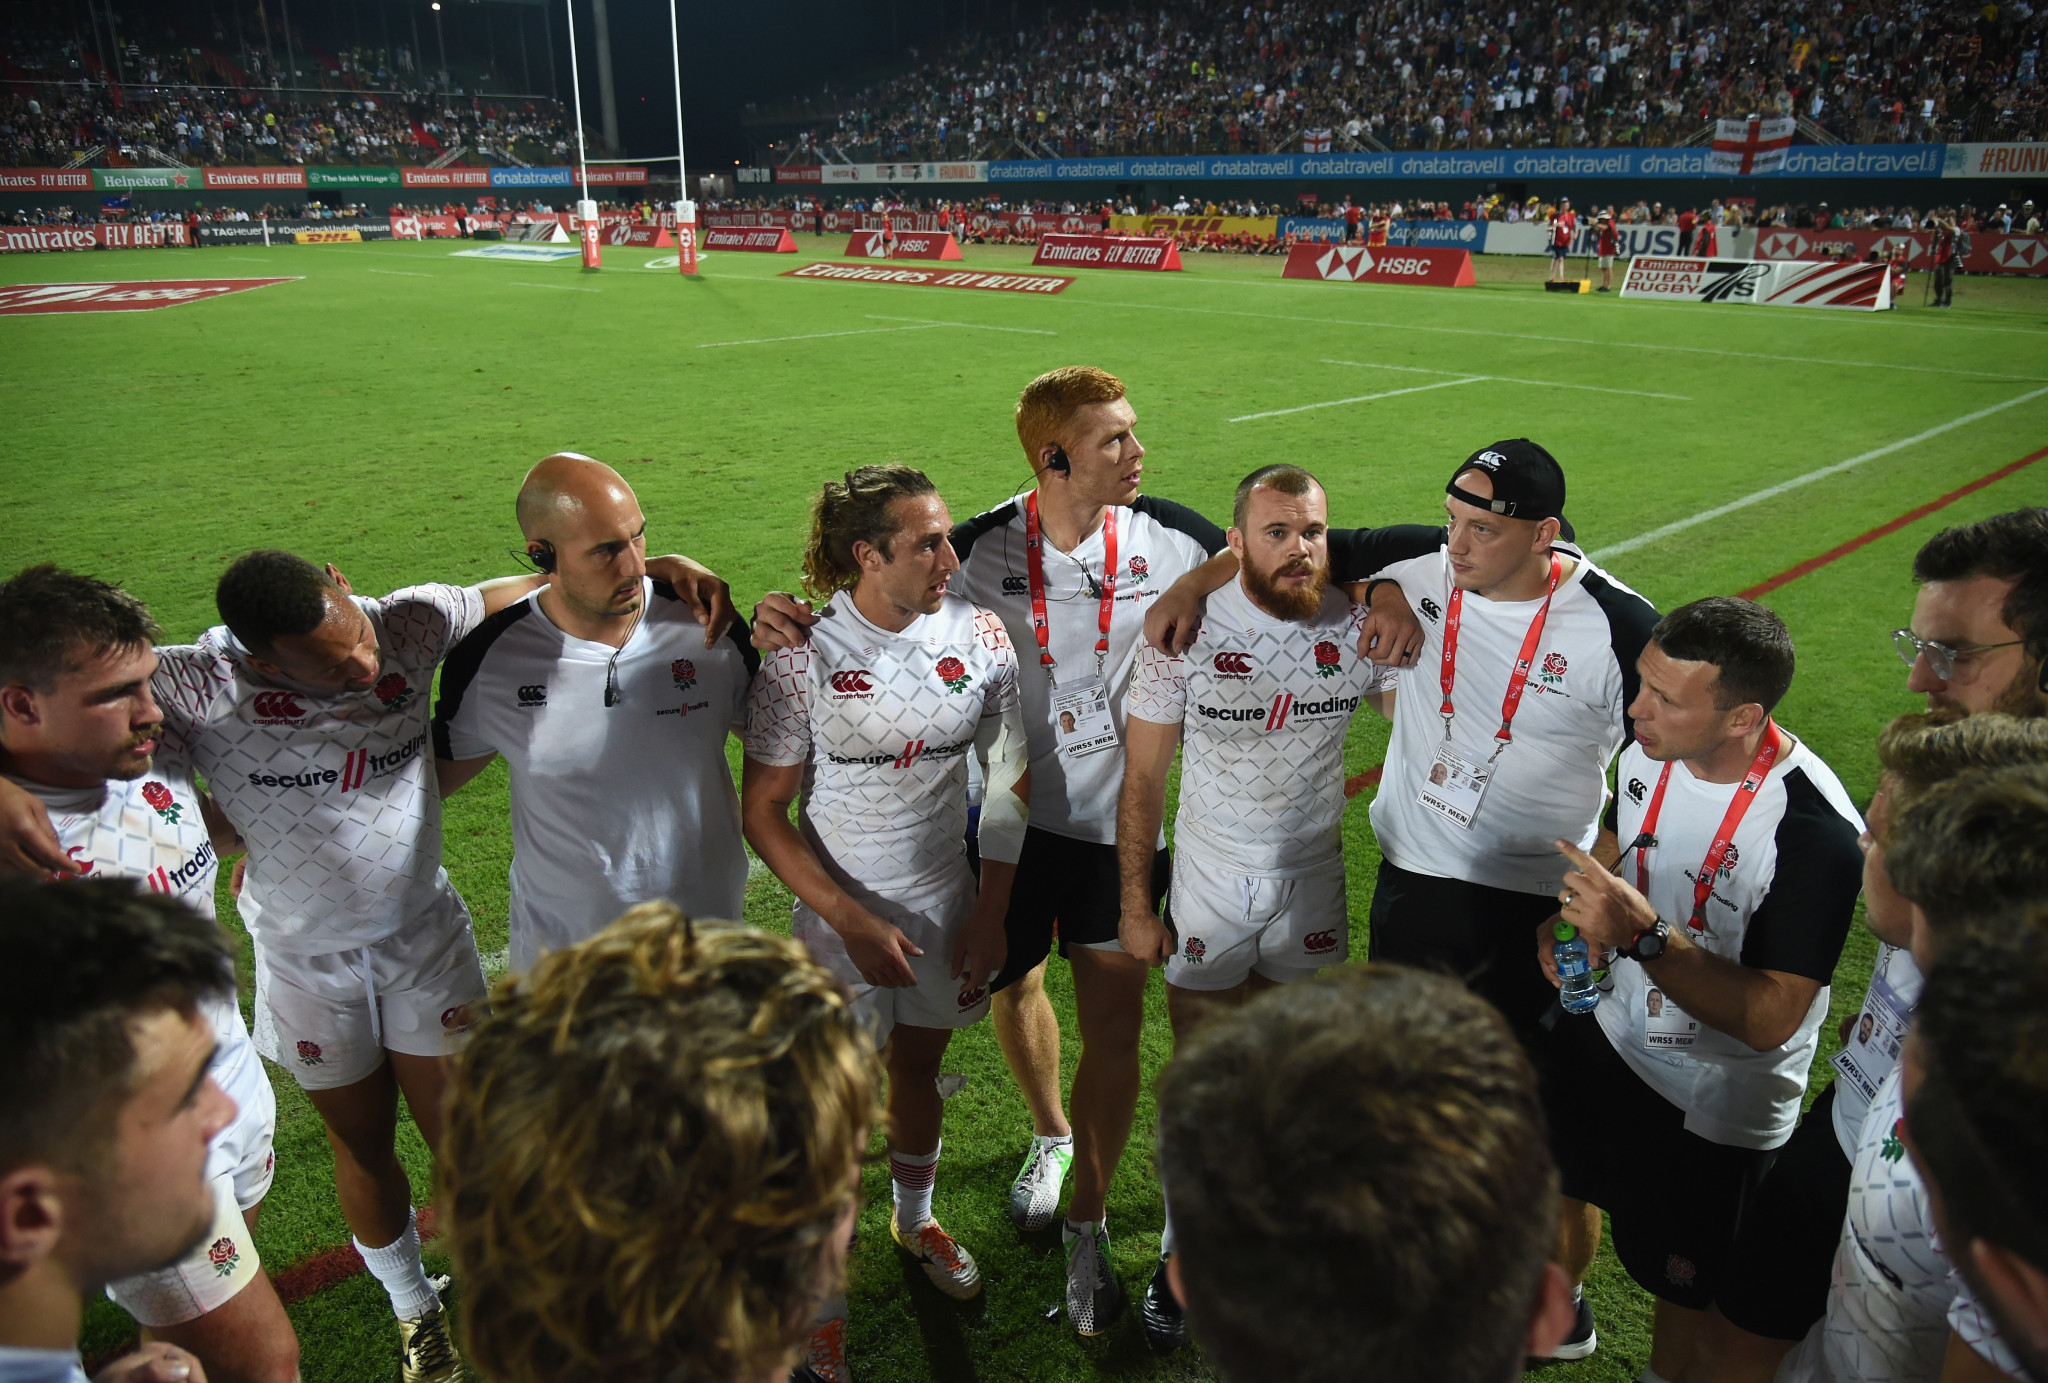 Amor coached the England men's team to victory in their Olympic qualifier ©Getty Images